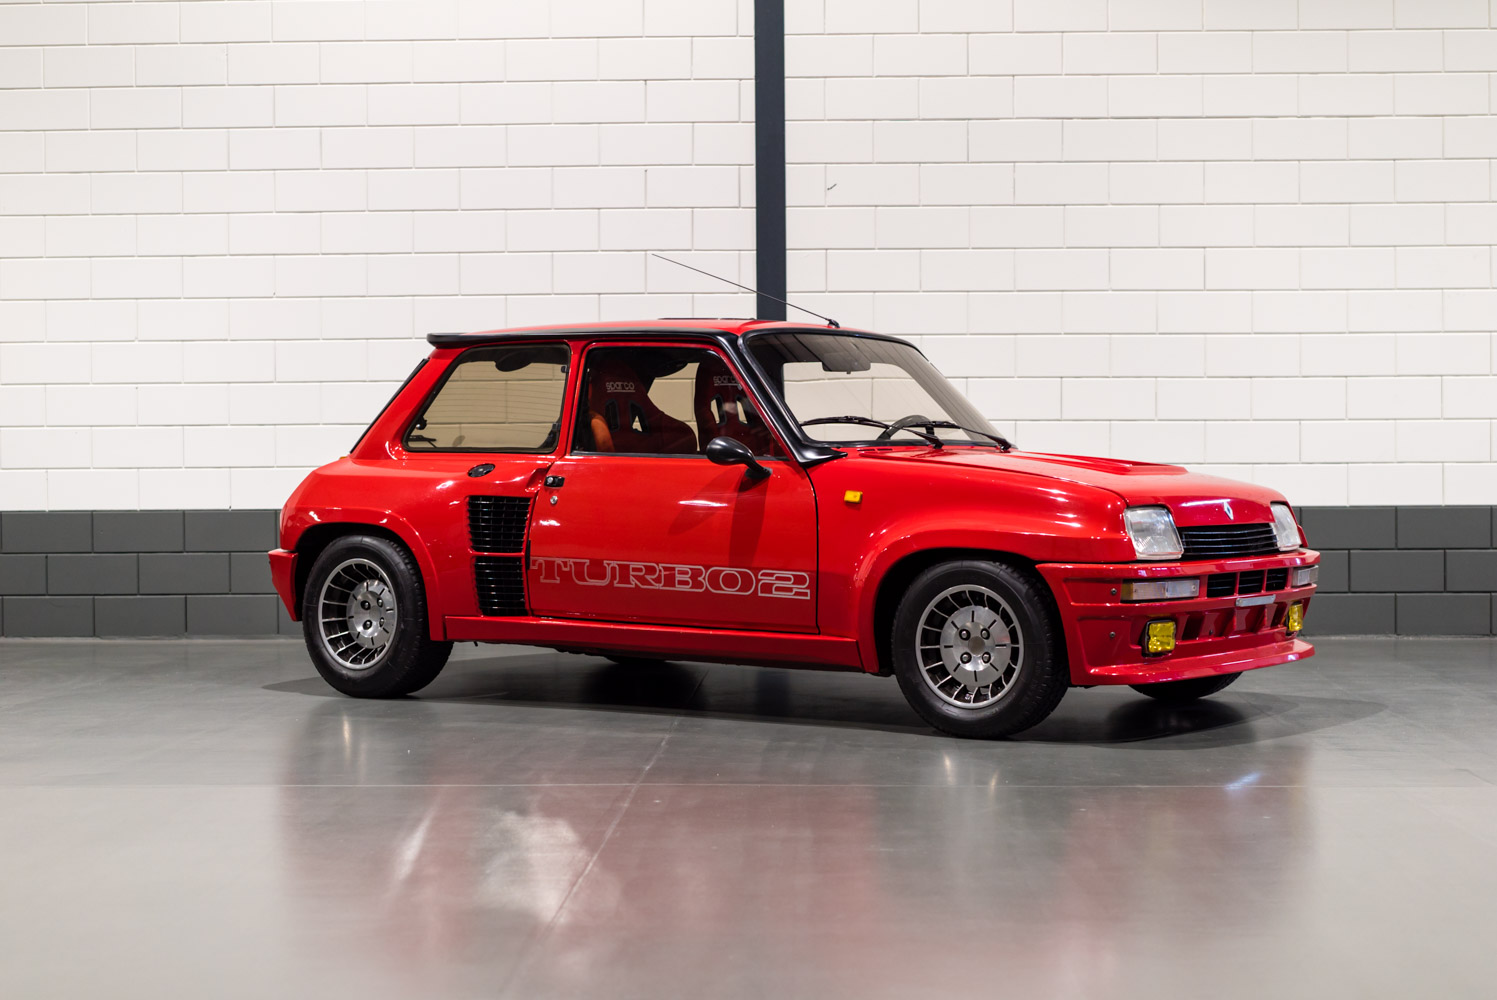 renault 5 turbo 2 s2 cc. Black Bedroom Furniture Sets. Home Design Ideas